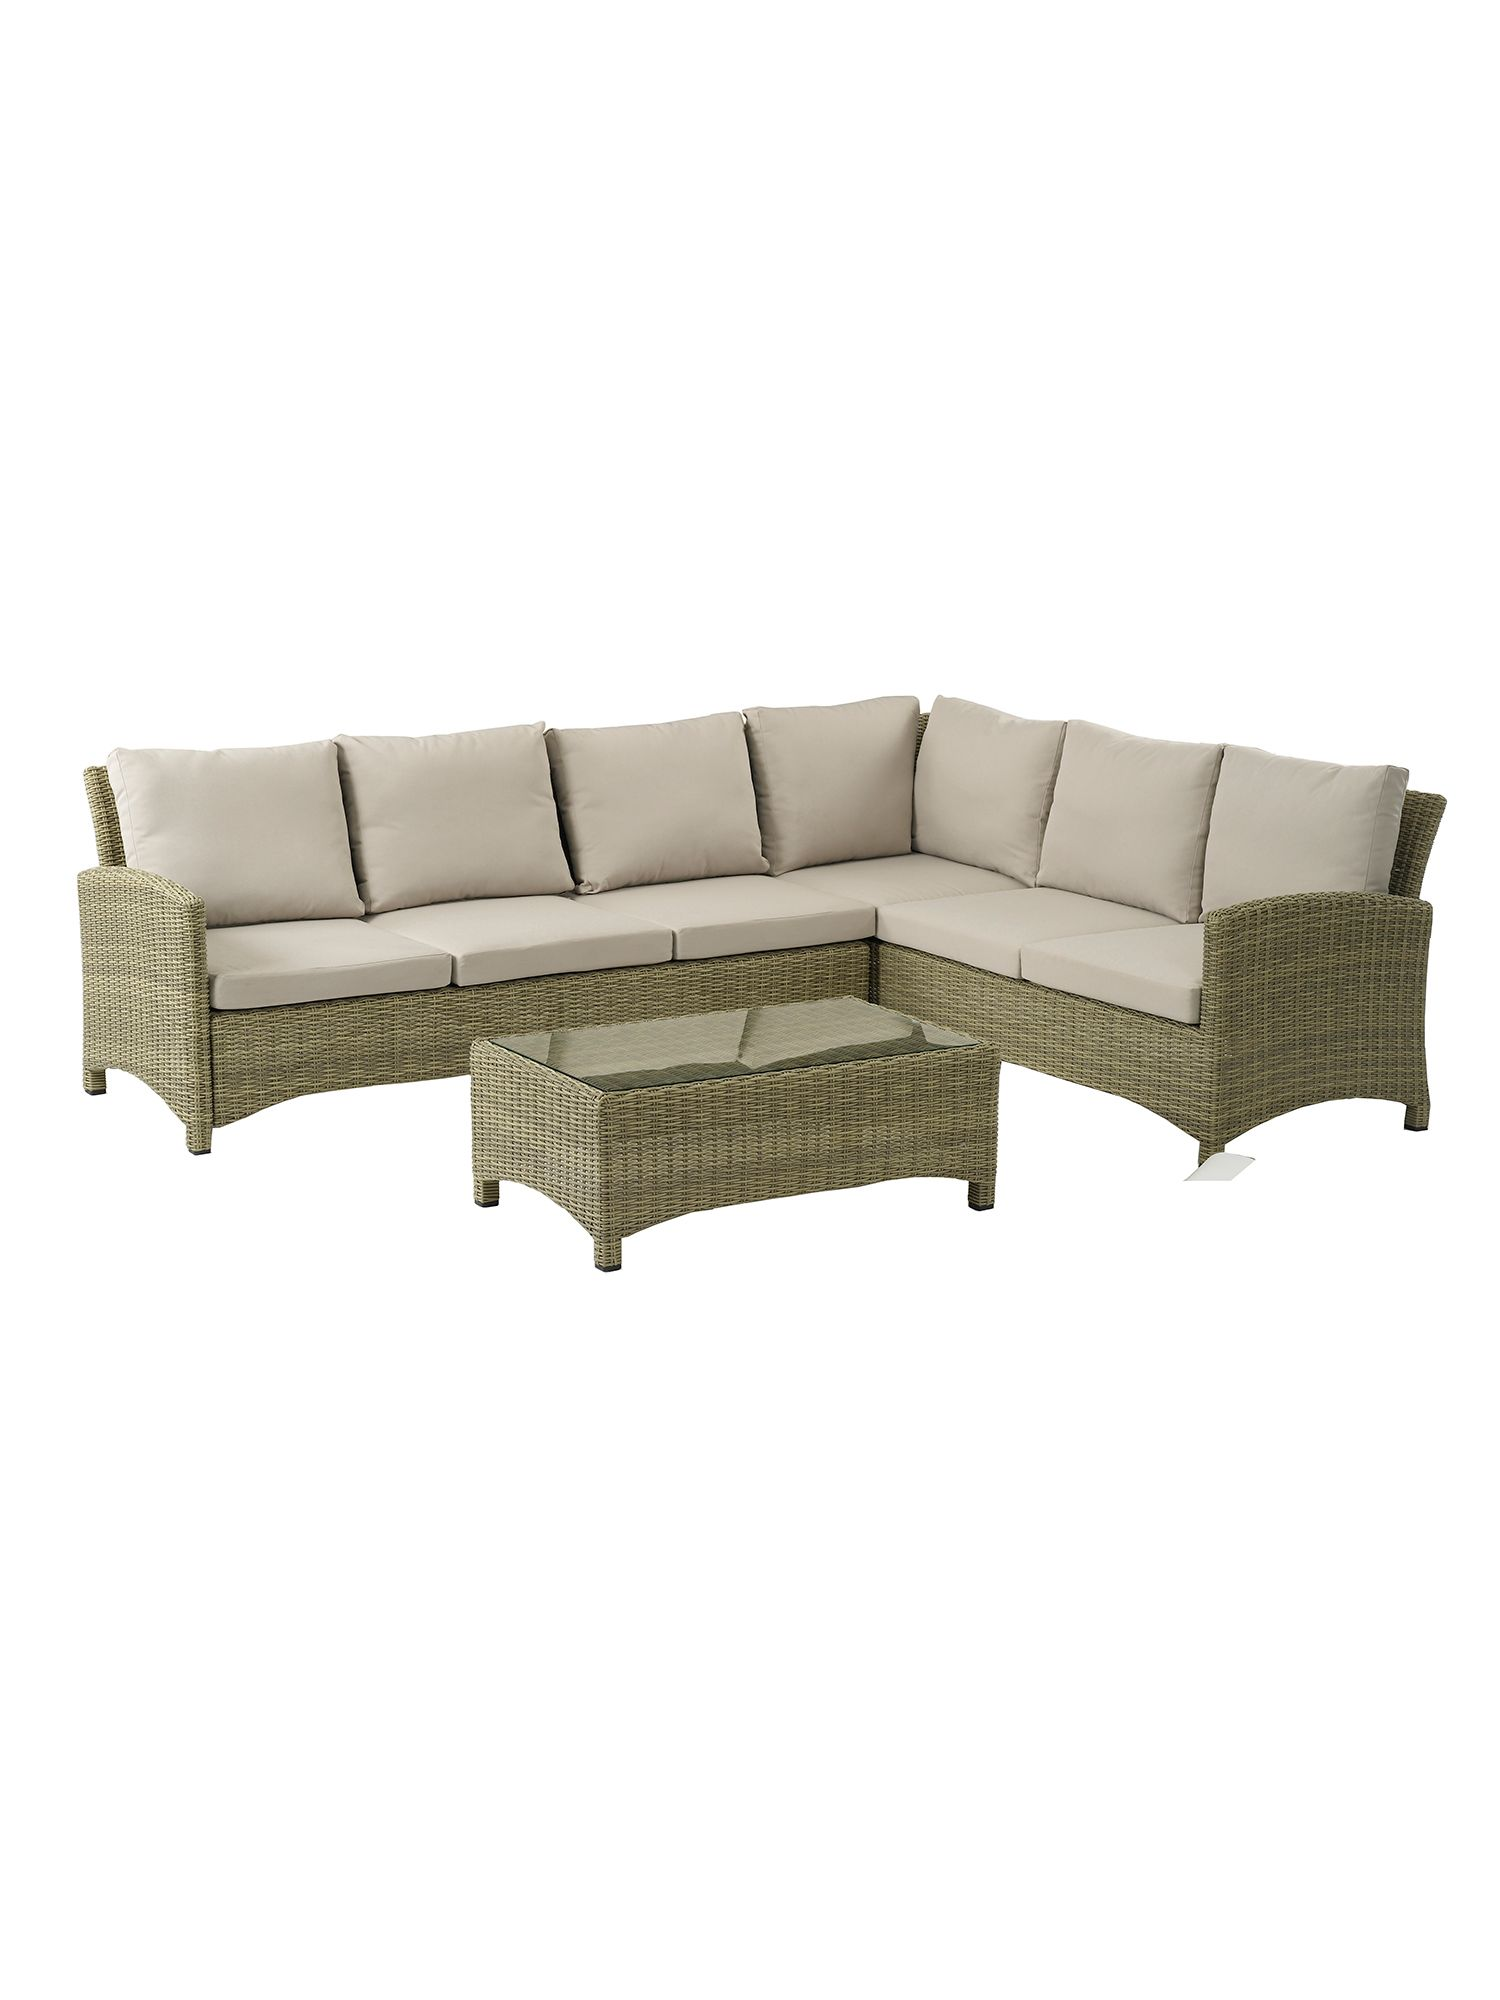 Image of Bramblecrest Cotswold modular sofa with coffee table